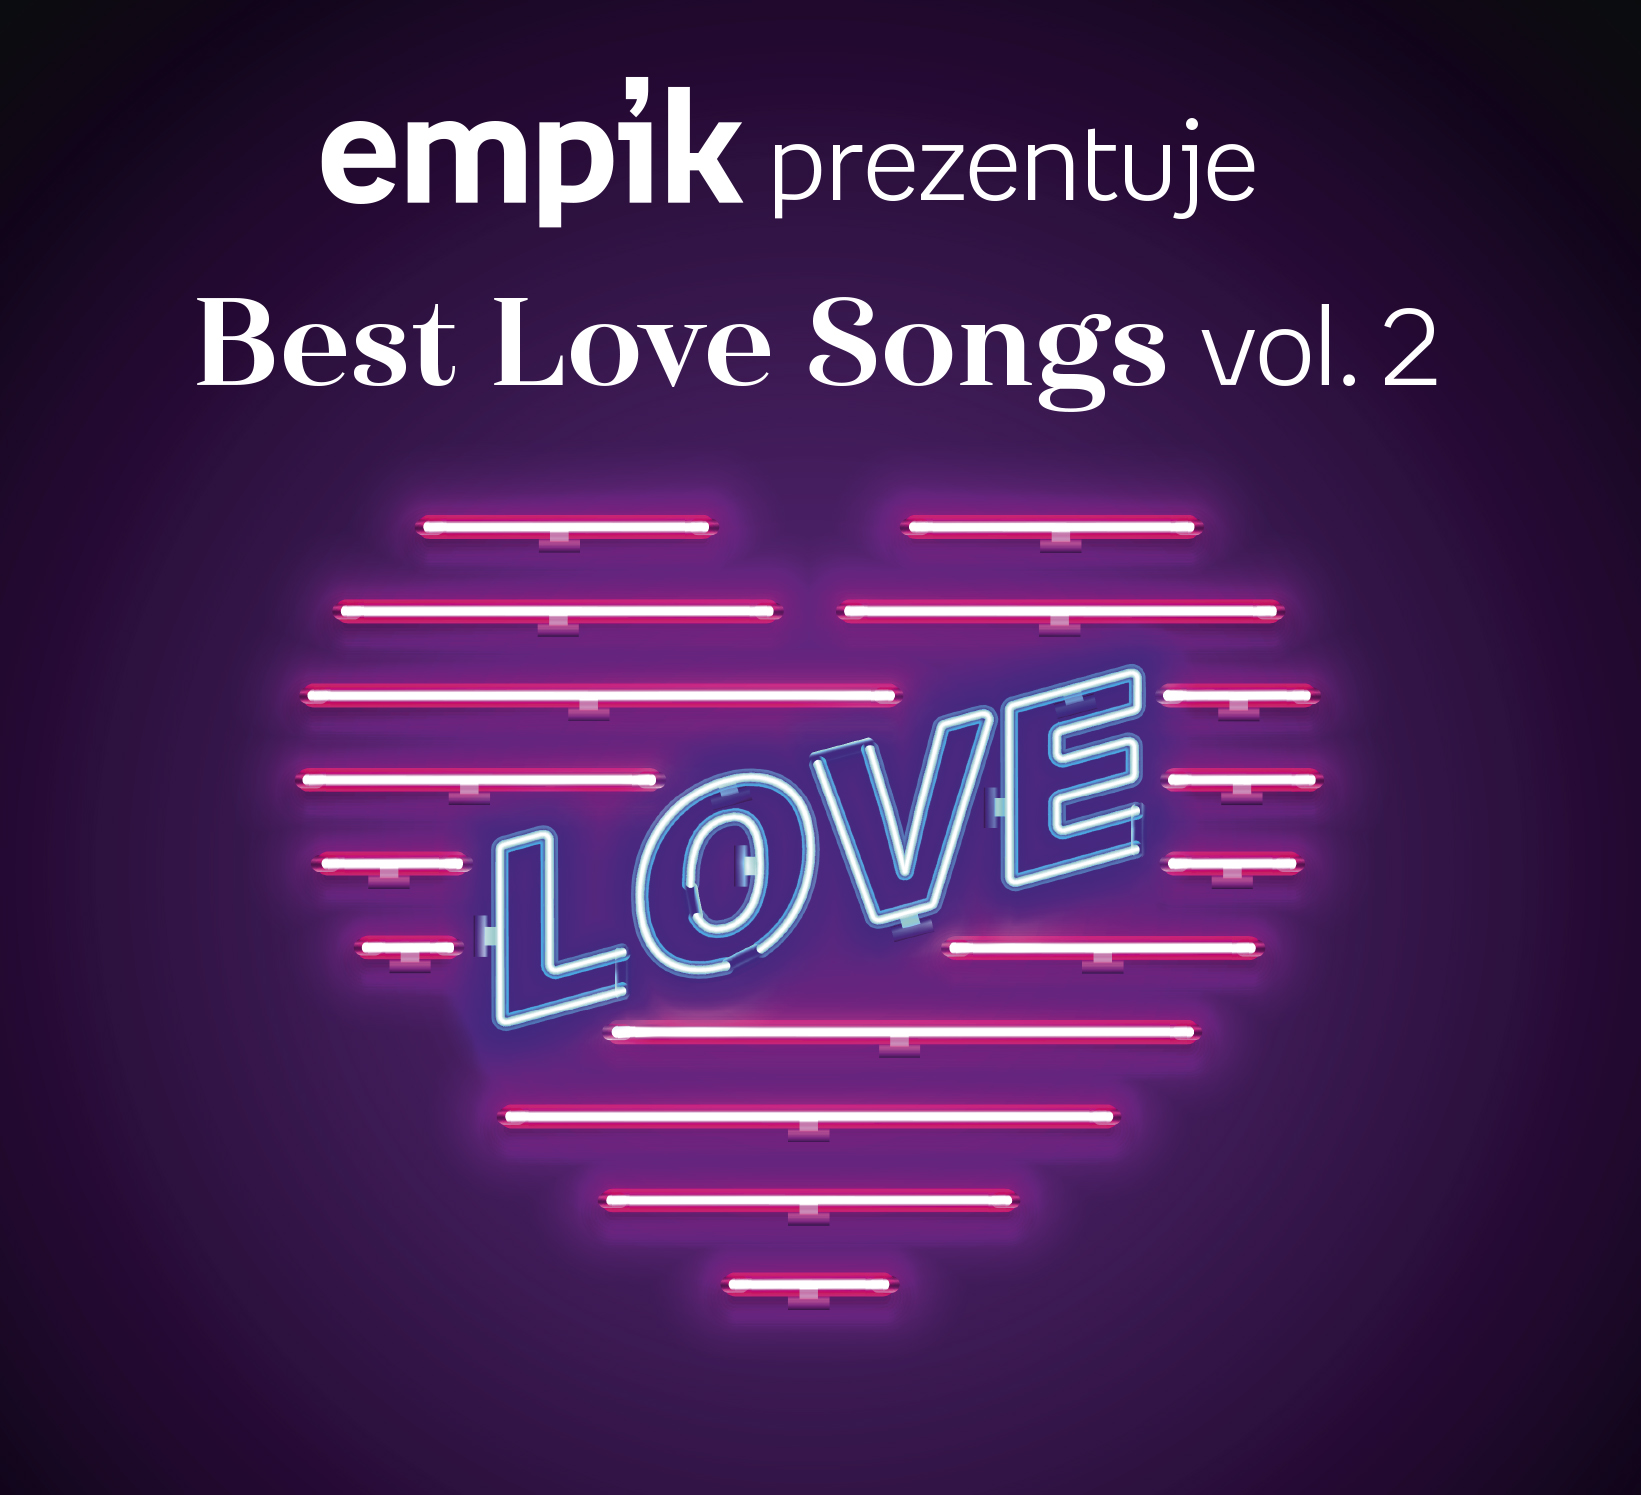 Empik Prezentuje: Best Love Songs vol. 2